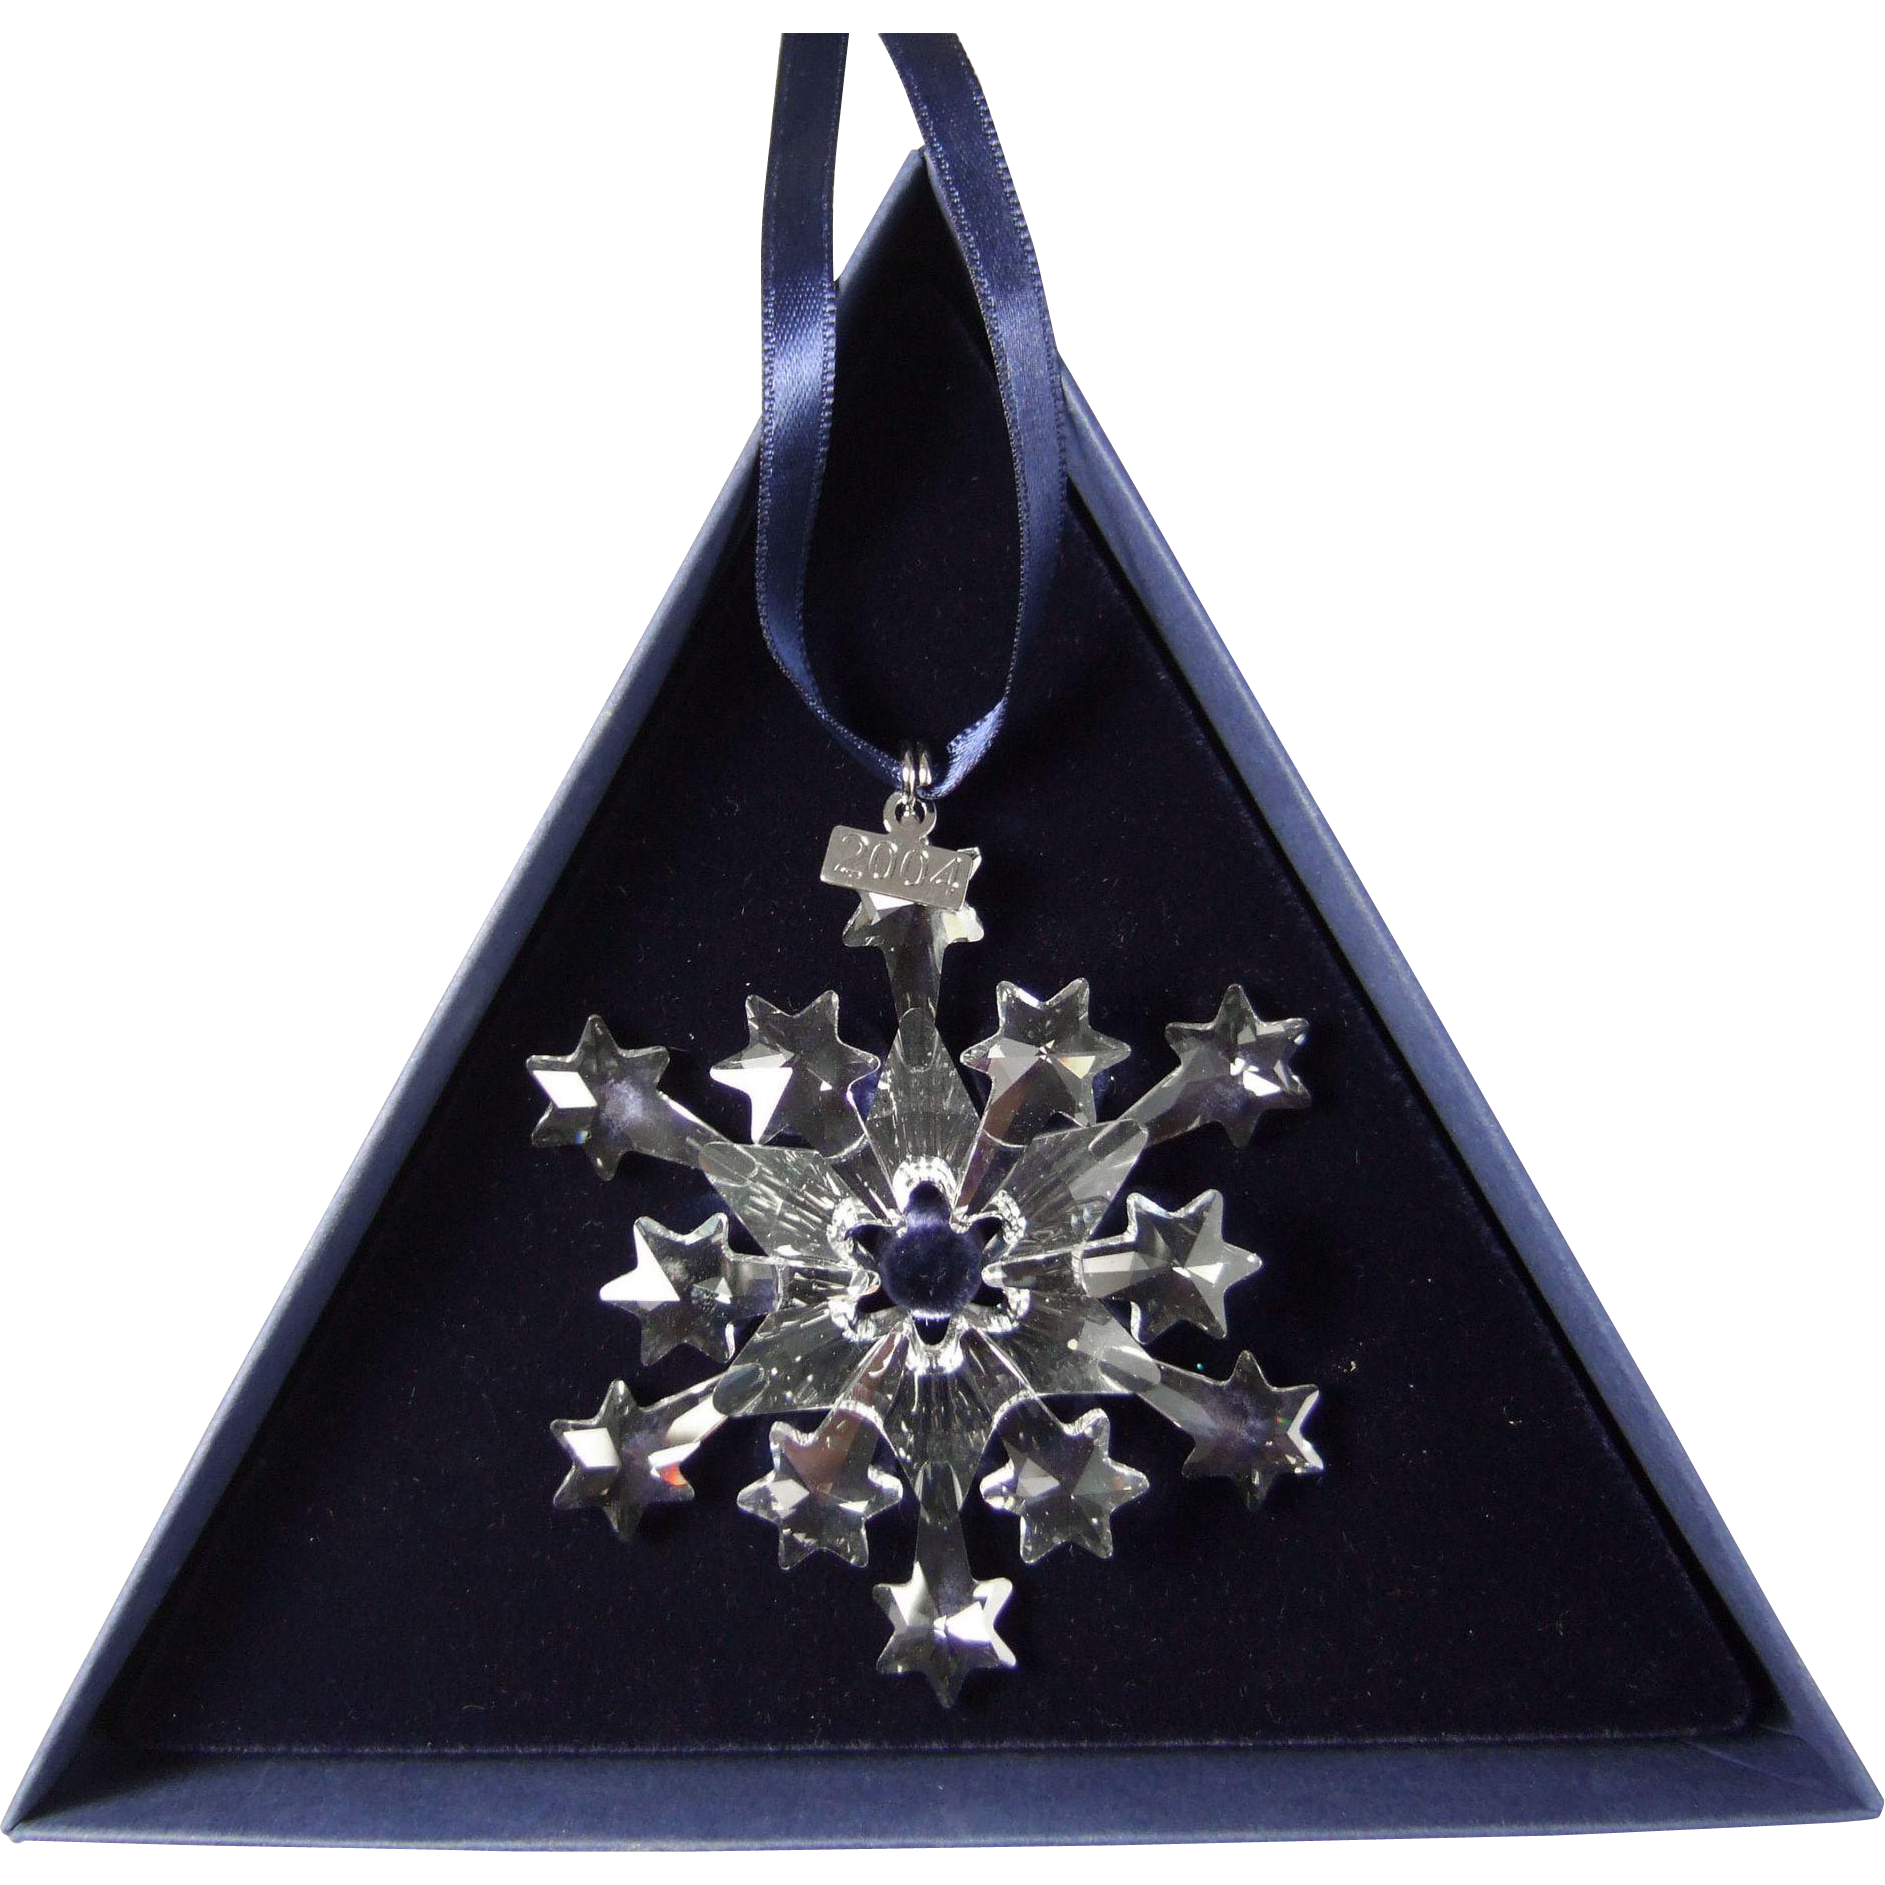 Swarovski christmas ornament 2004 - 2004 Swarovski Crystal Snowflake Annual Edition Christmas Ornament